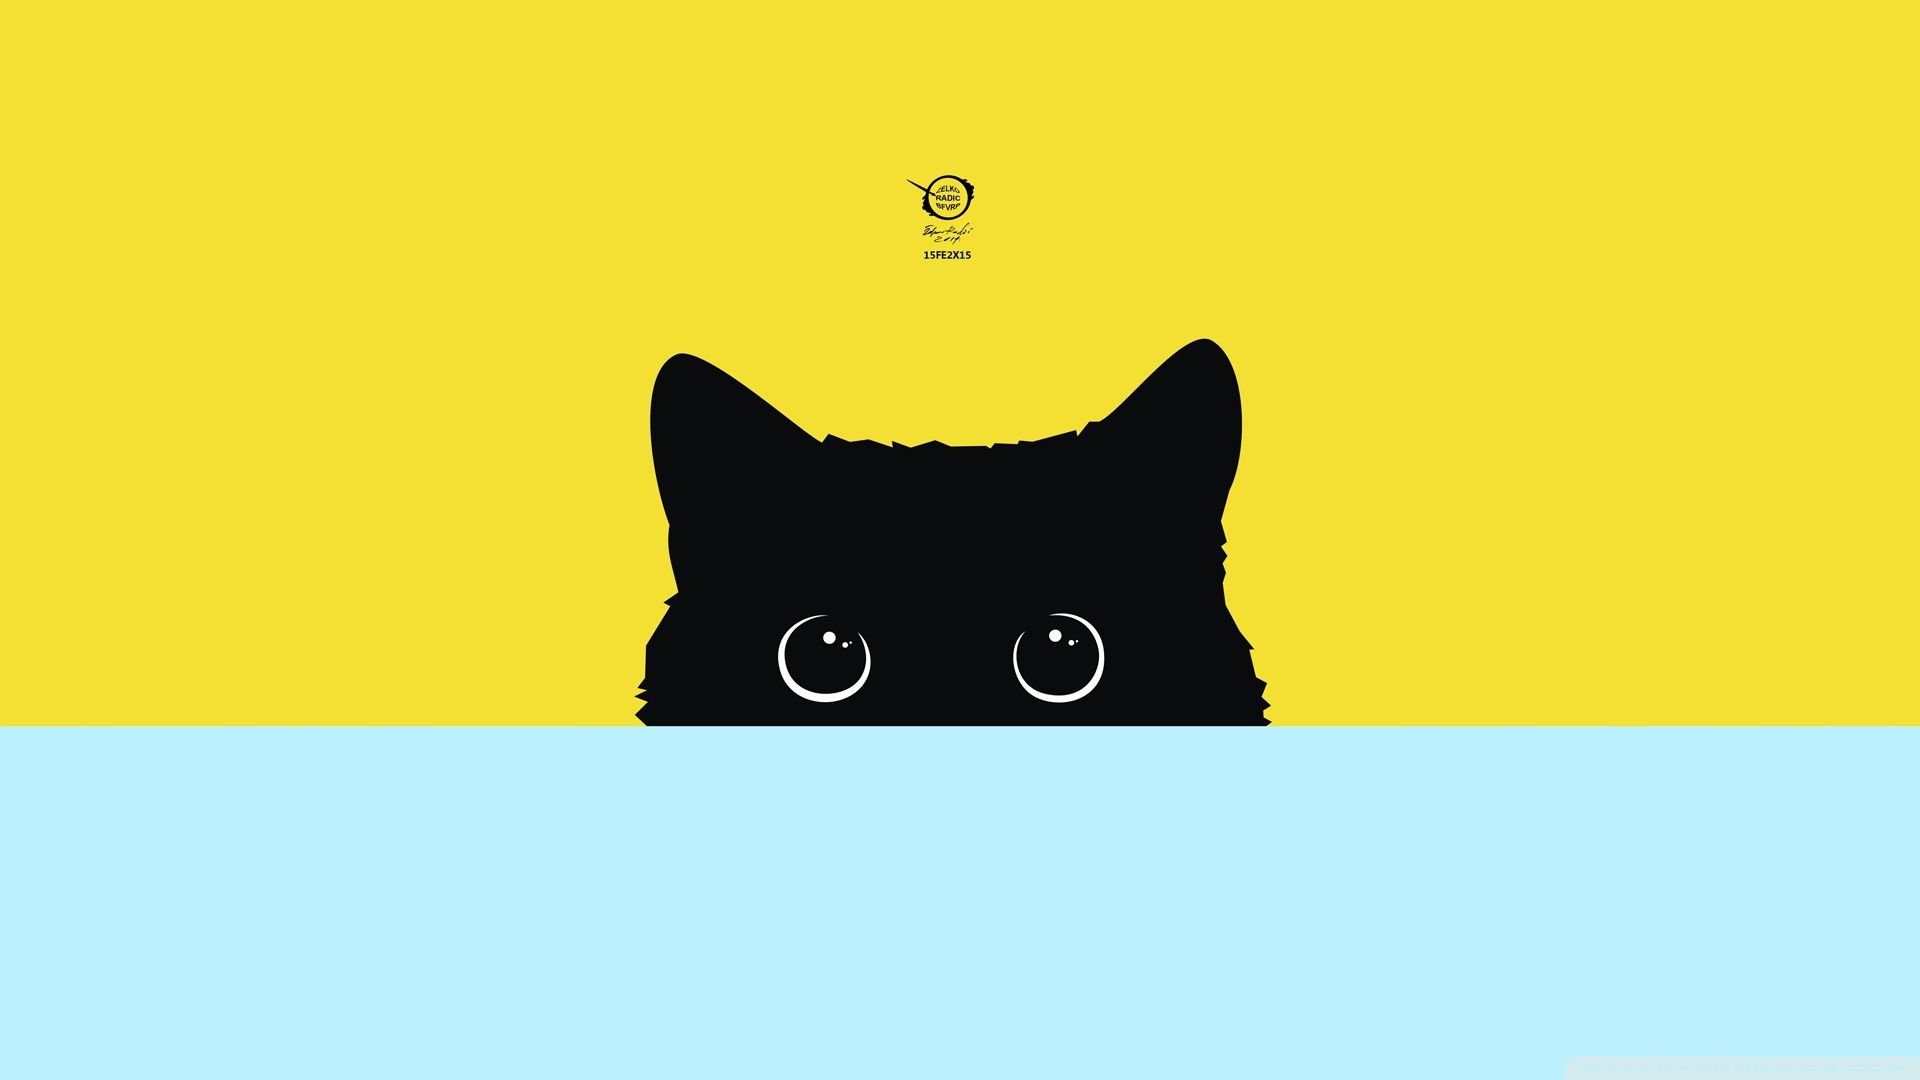 Cartoon cat desktop wallpapers top free cartoon cat - Cat wallpaper cartoon ...